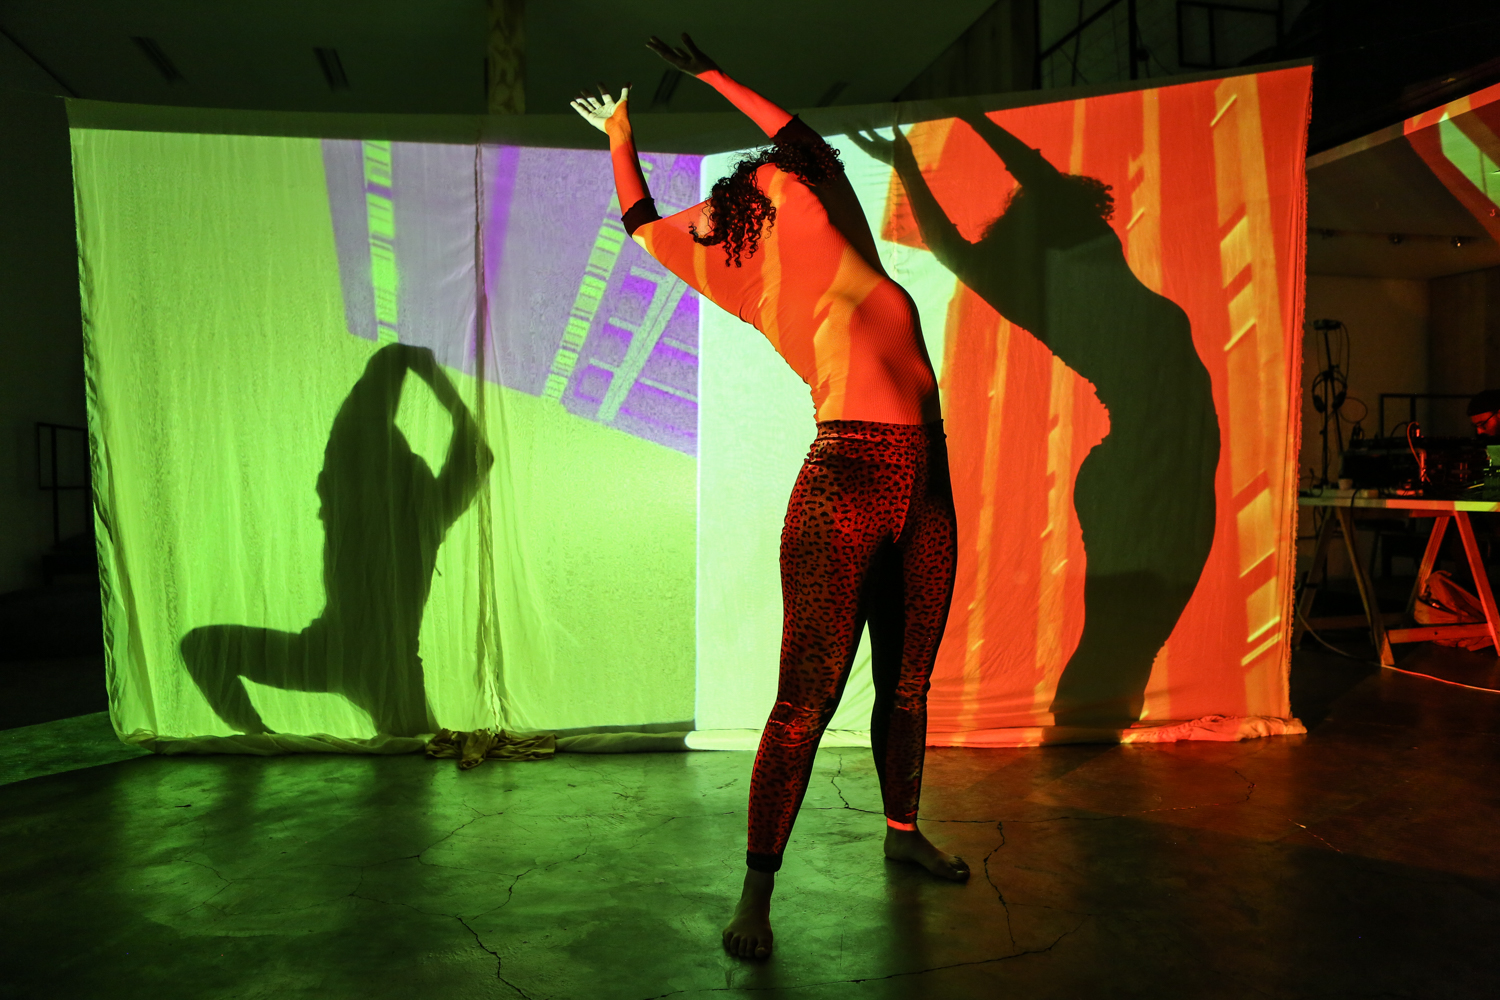 Saturday 26th October 2-4pm   Ghost Dimensions Repertoire  WITH PROJECT X  Venue: GOMA, Glasgow   BOOK   HERE